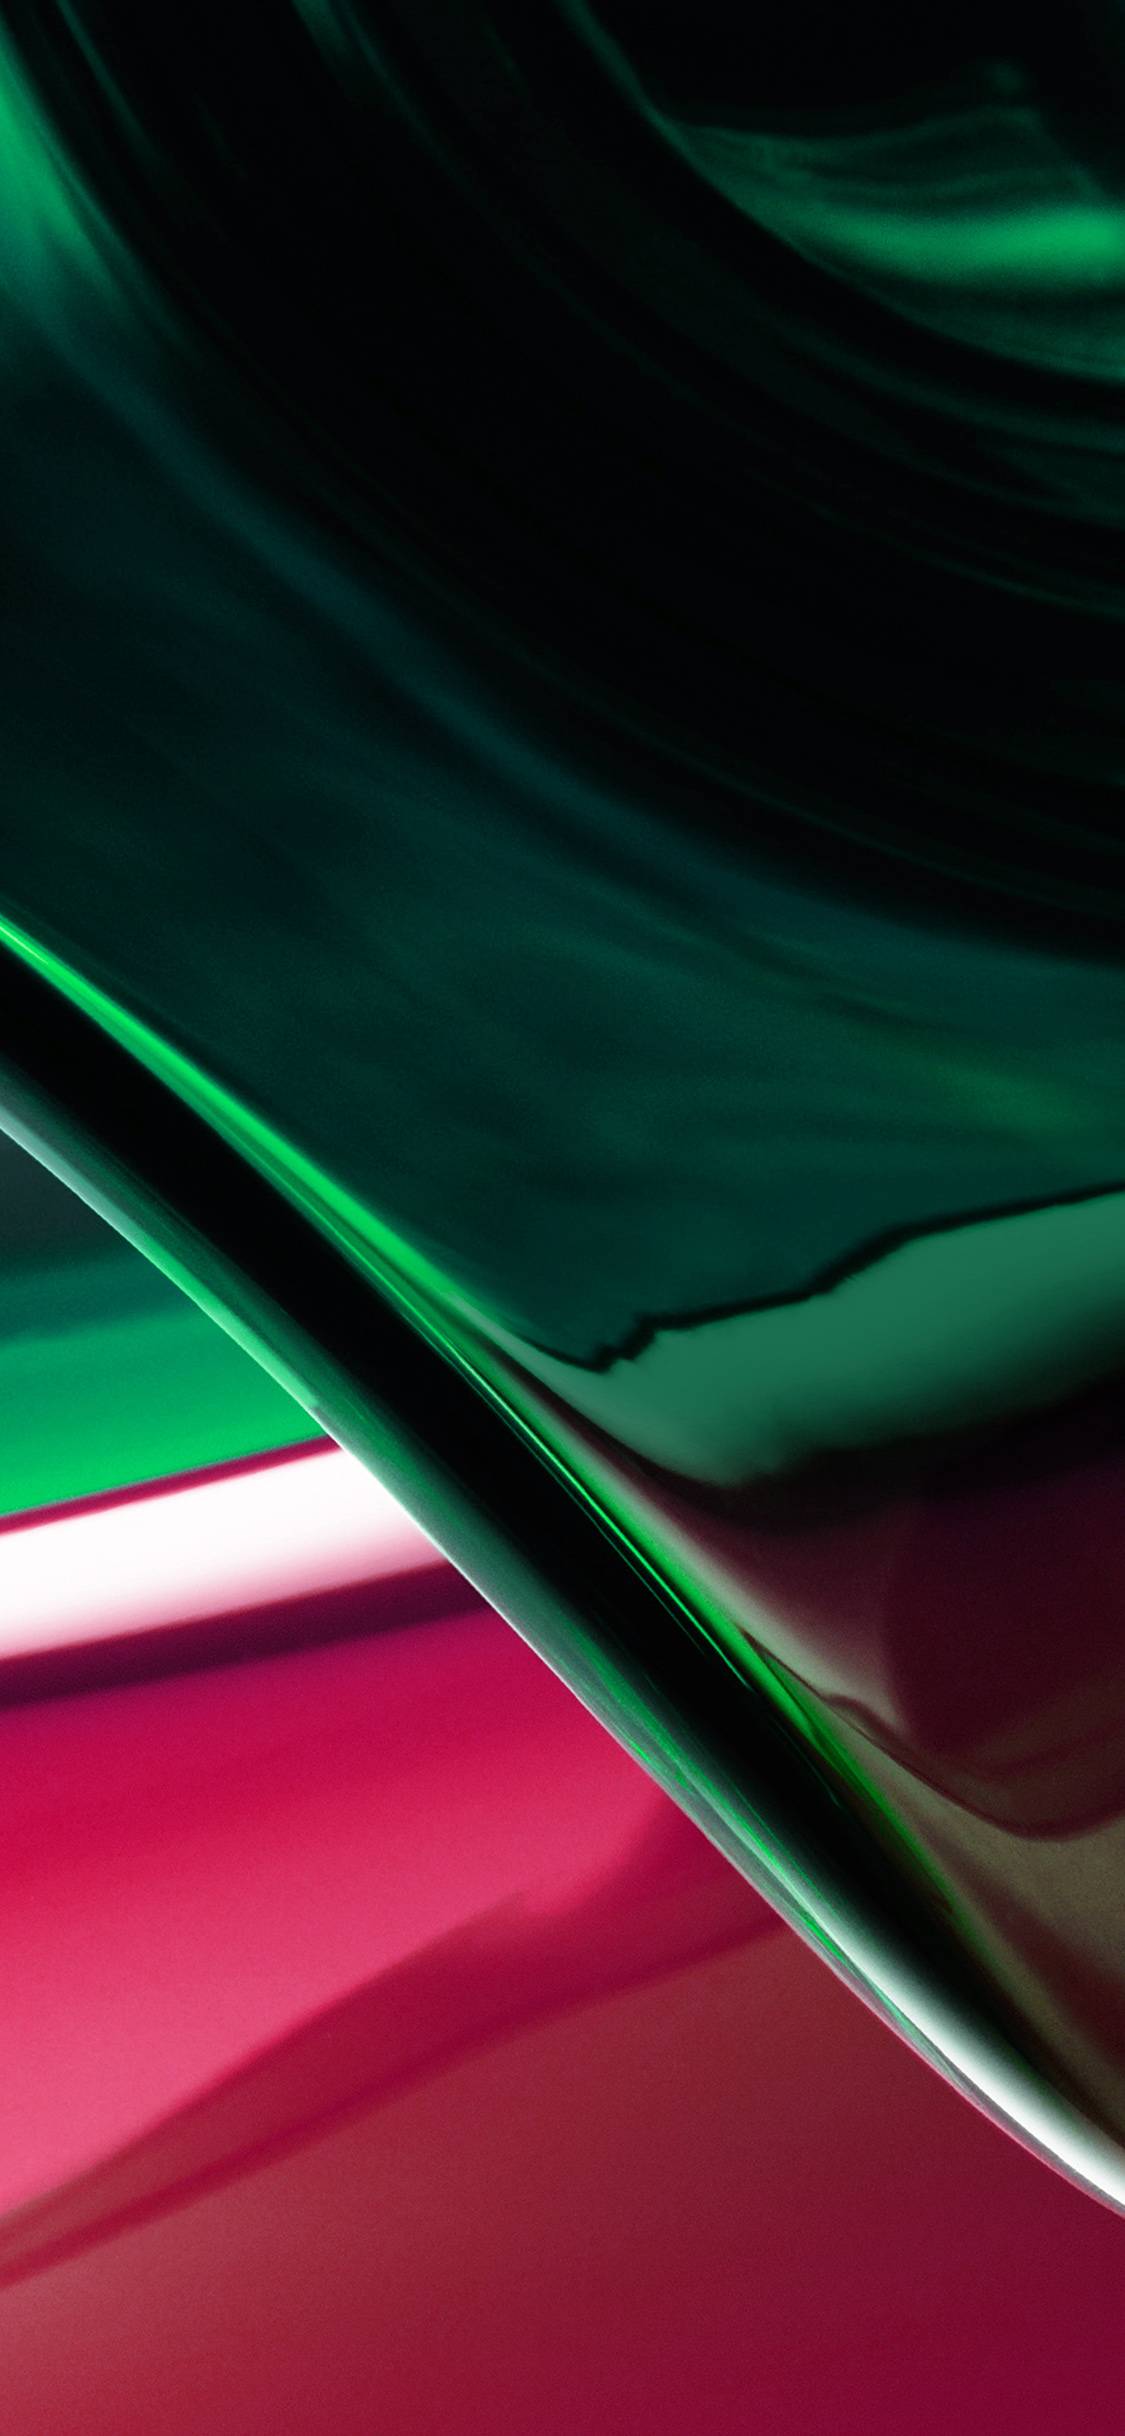 iPhonexpapers.com-Apple-iPhone-wallpaper-vt87-water-curve-art-pattern-green-red